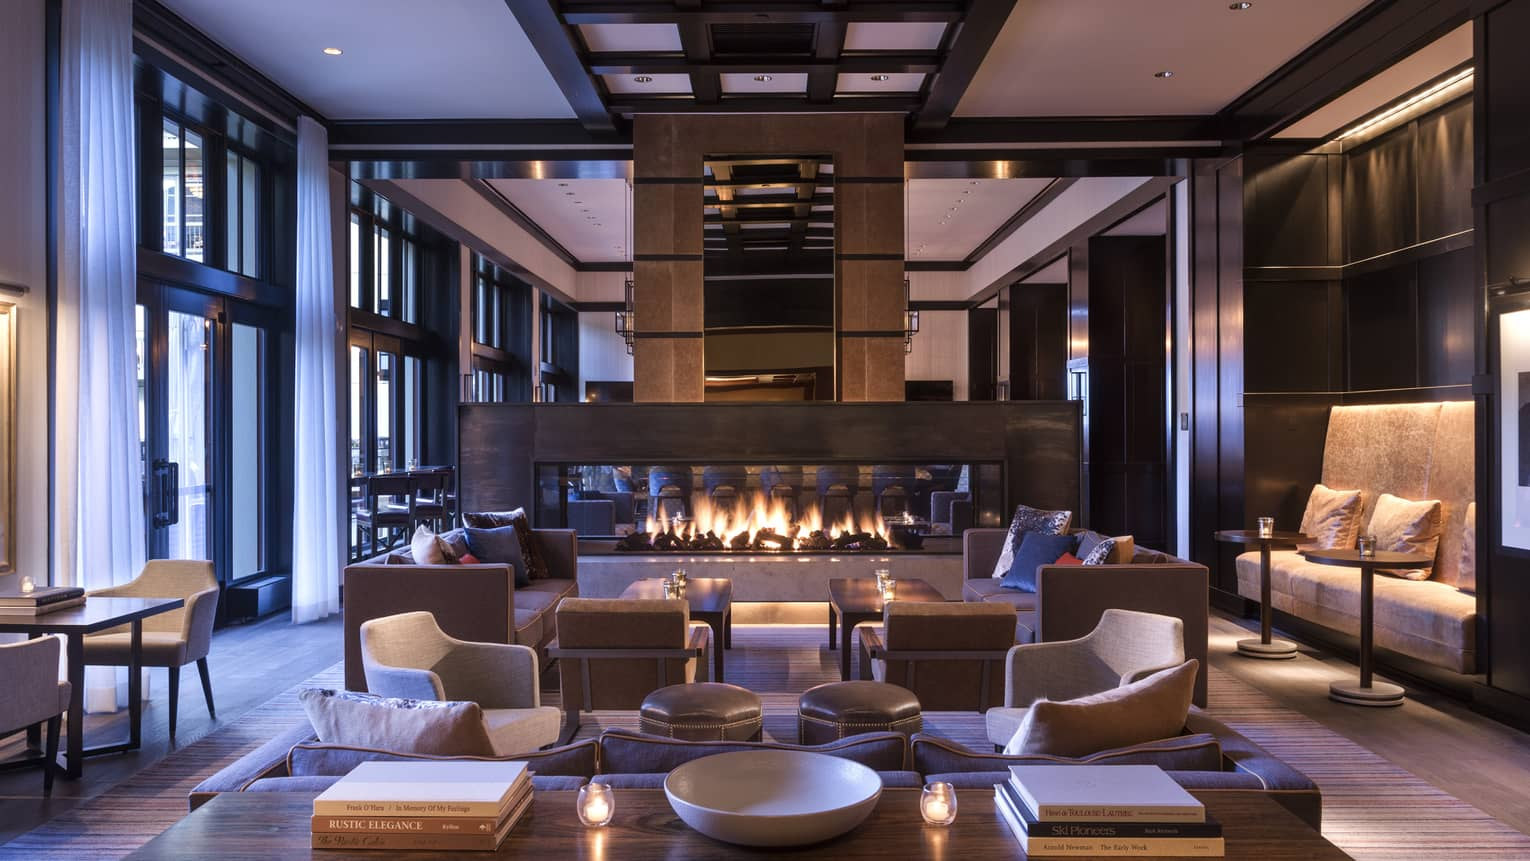 Indoor bar and lounge with a sofa, arm chairs and long fireplace